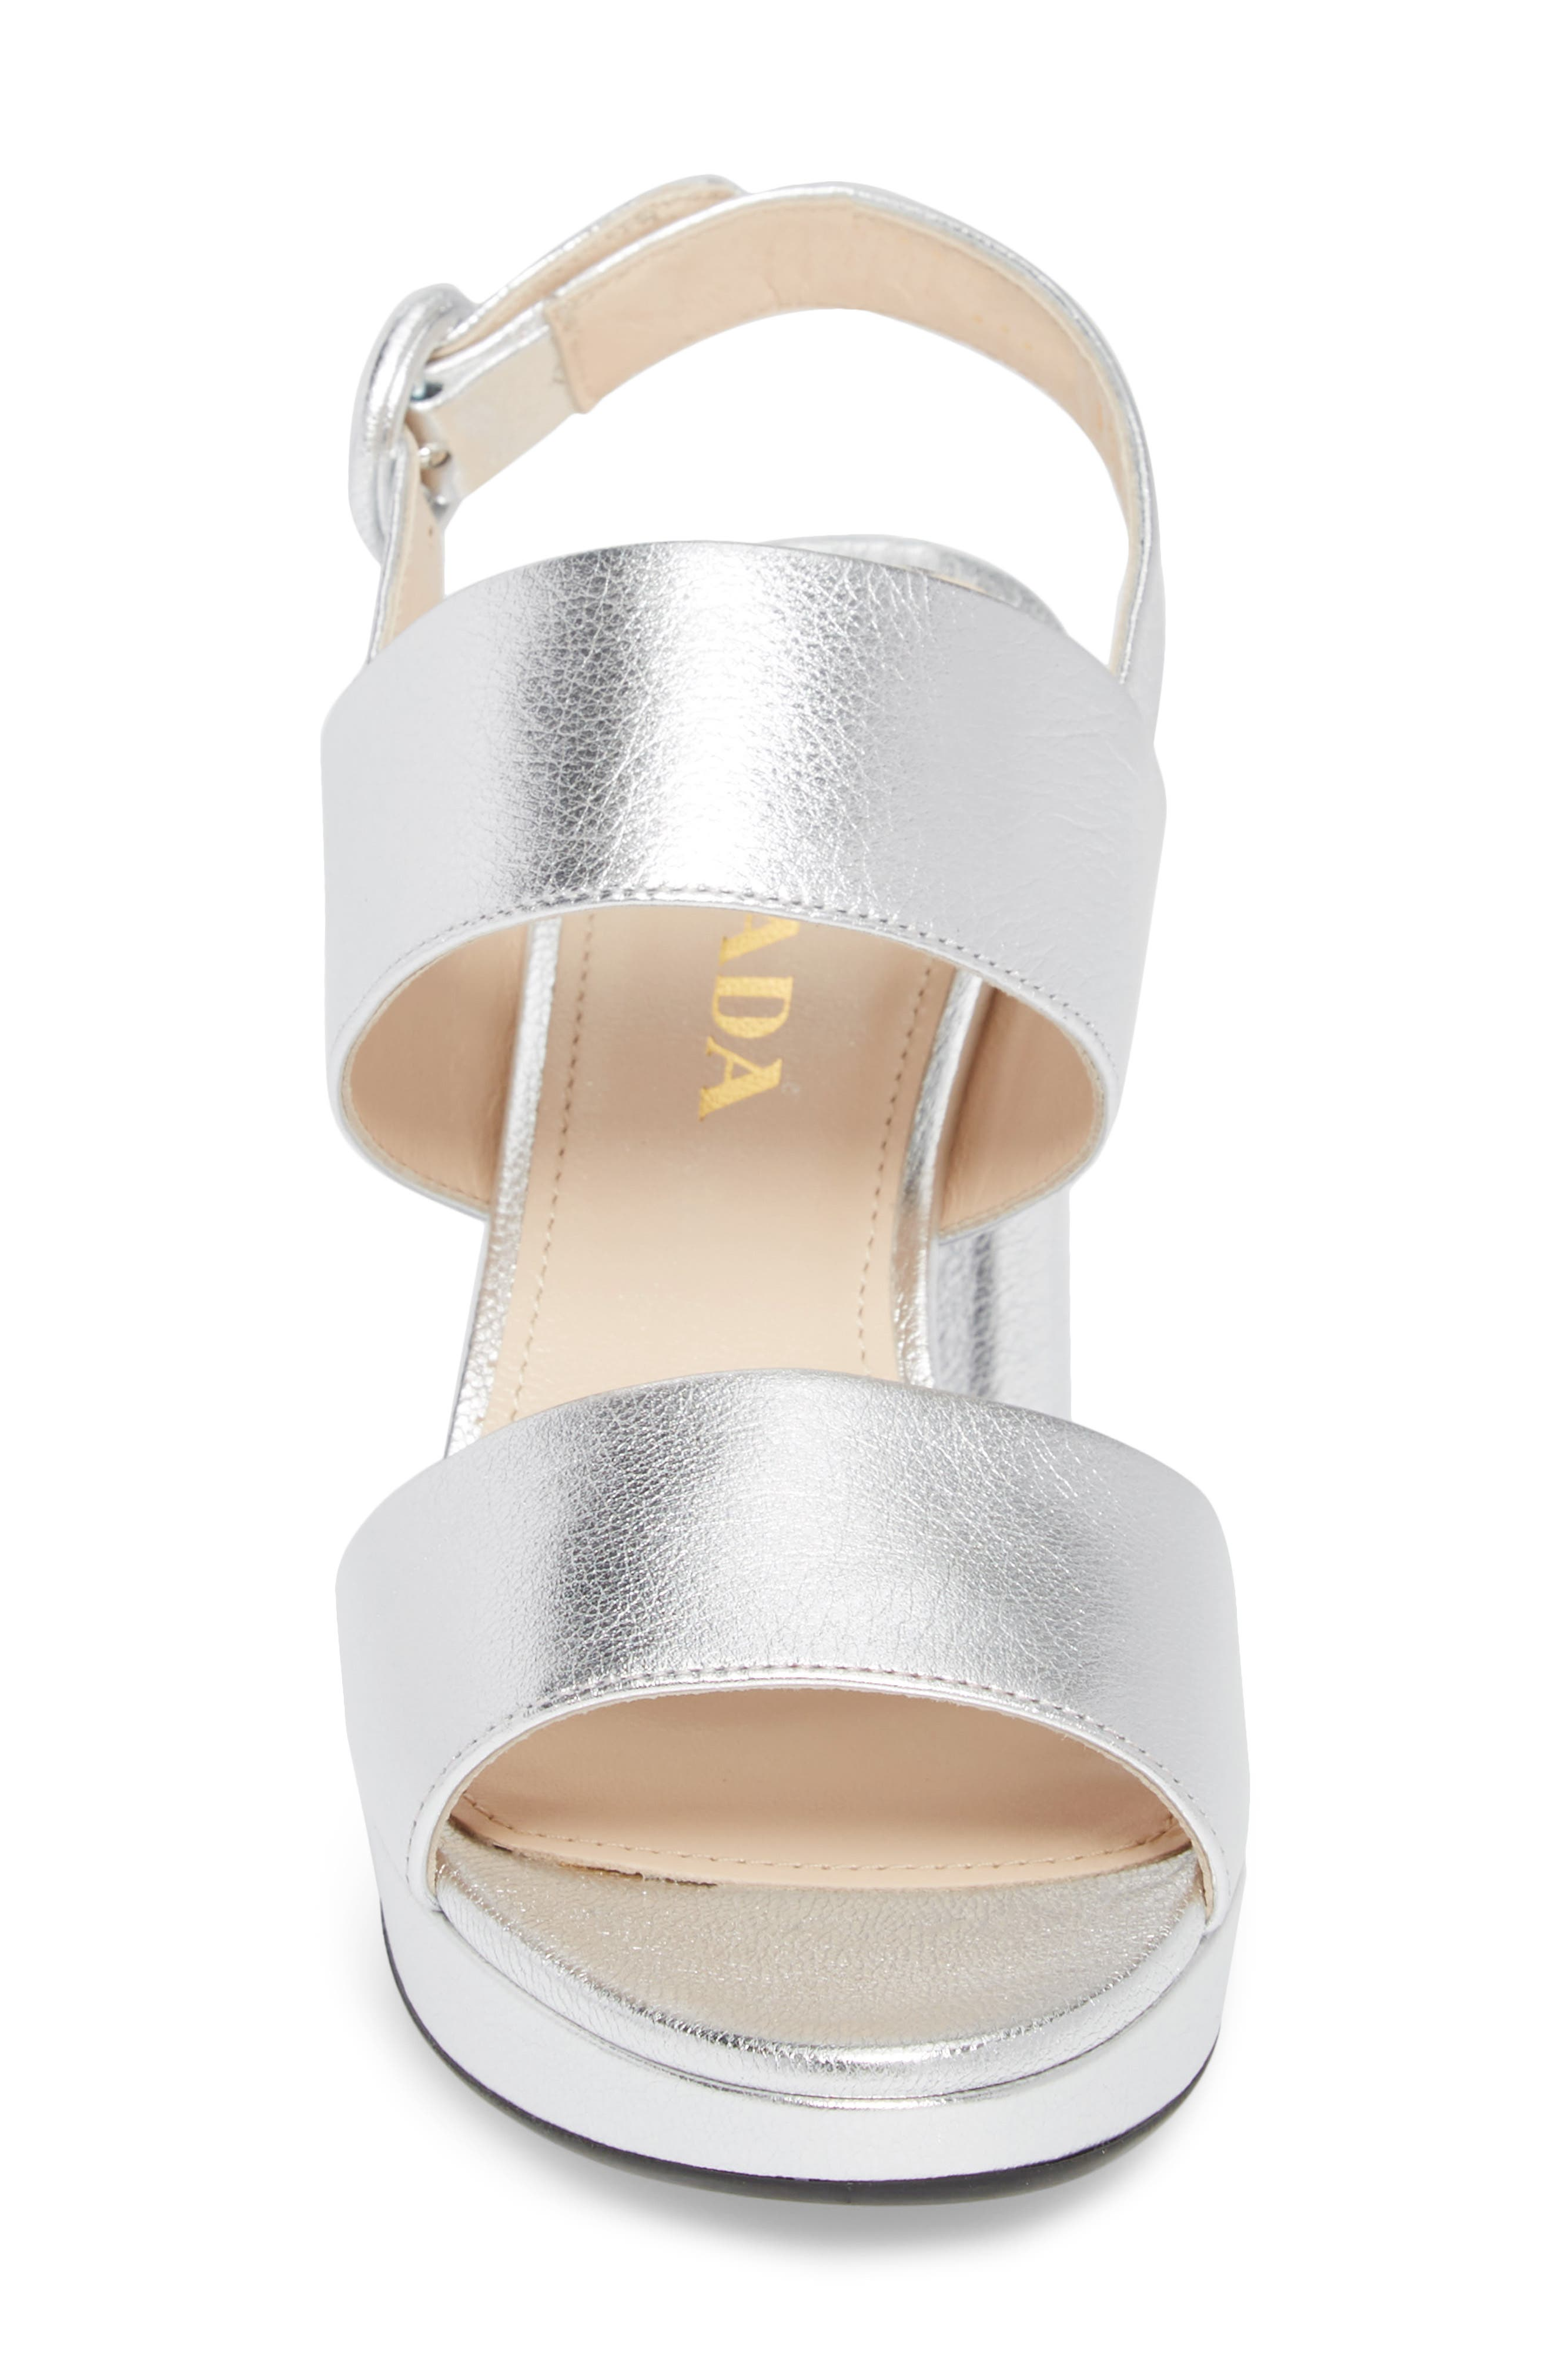 Double Band Platform Sandal,                             Alternate thumbnail 4, color,                             SILVER